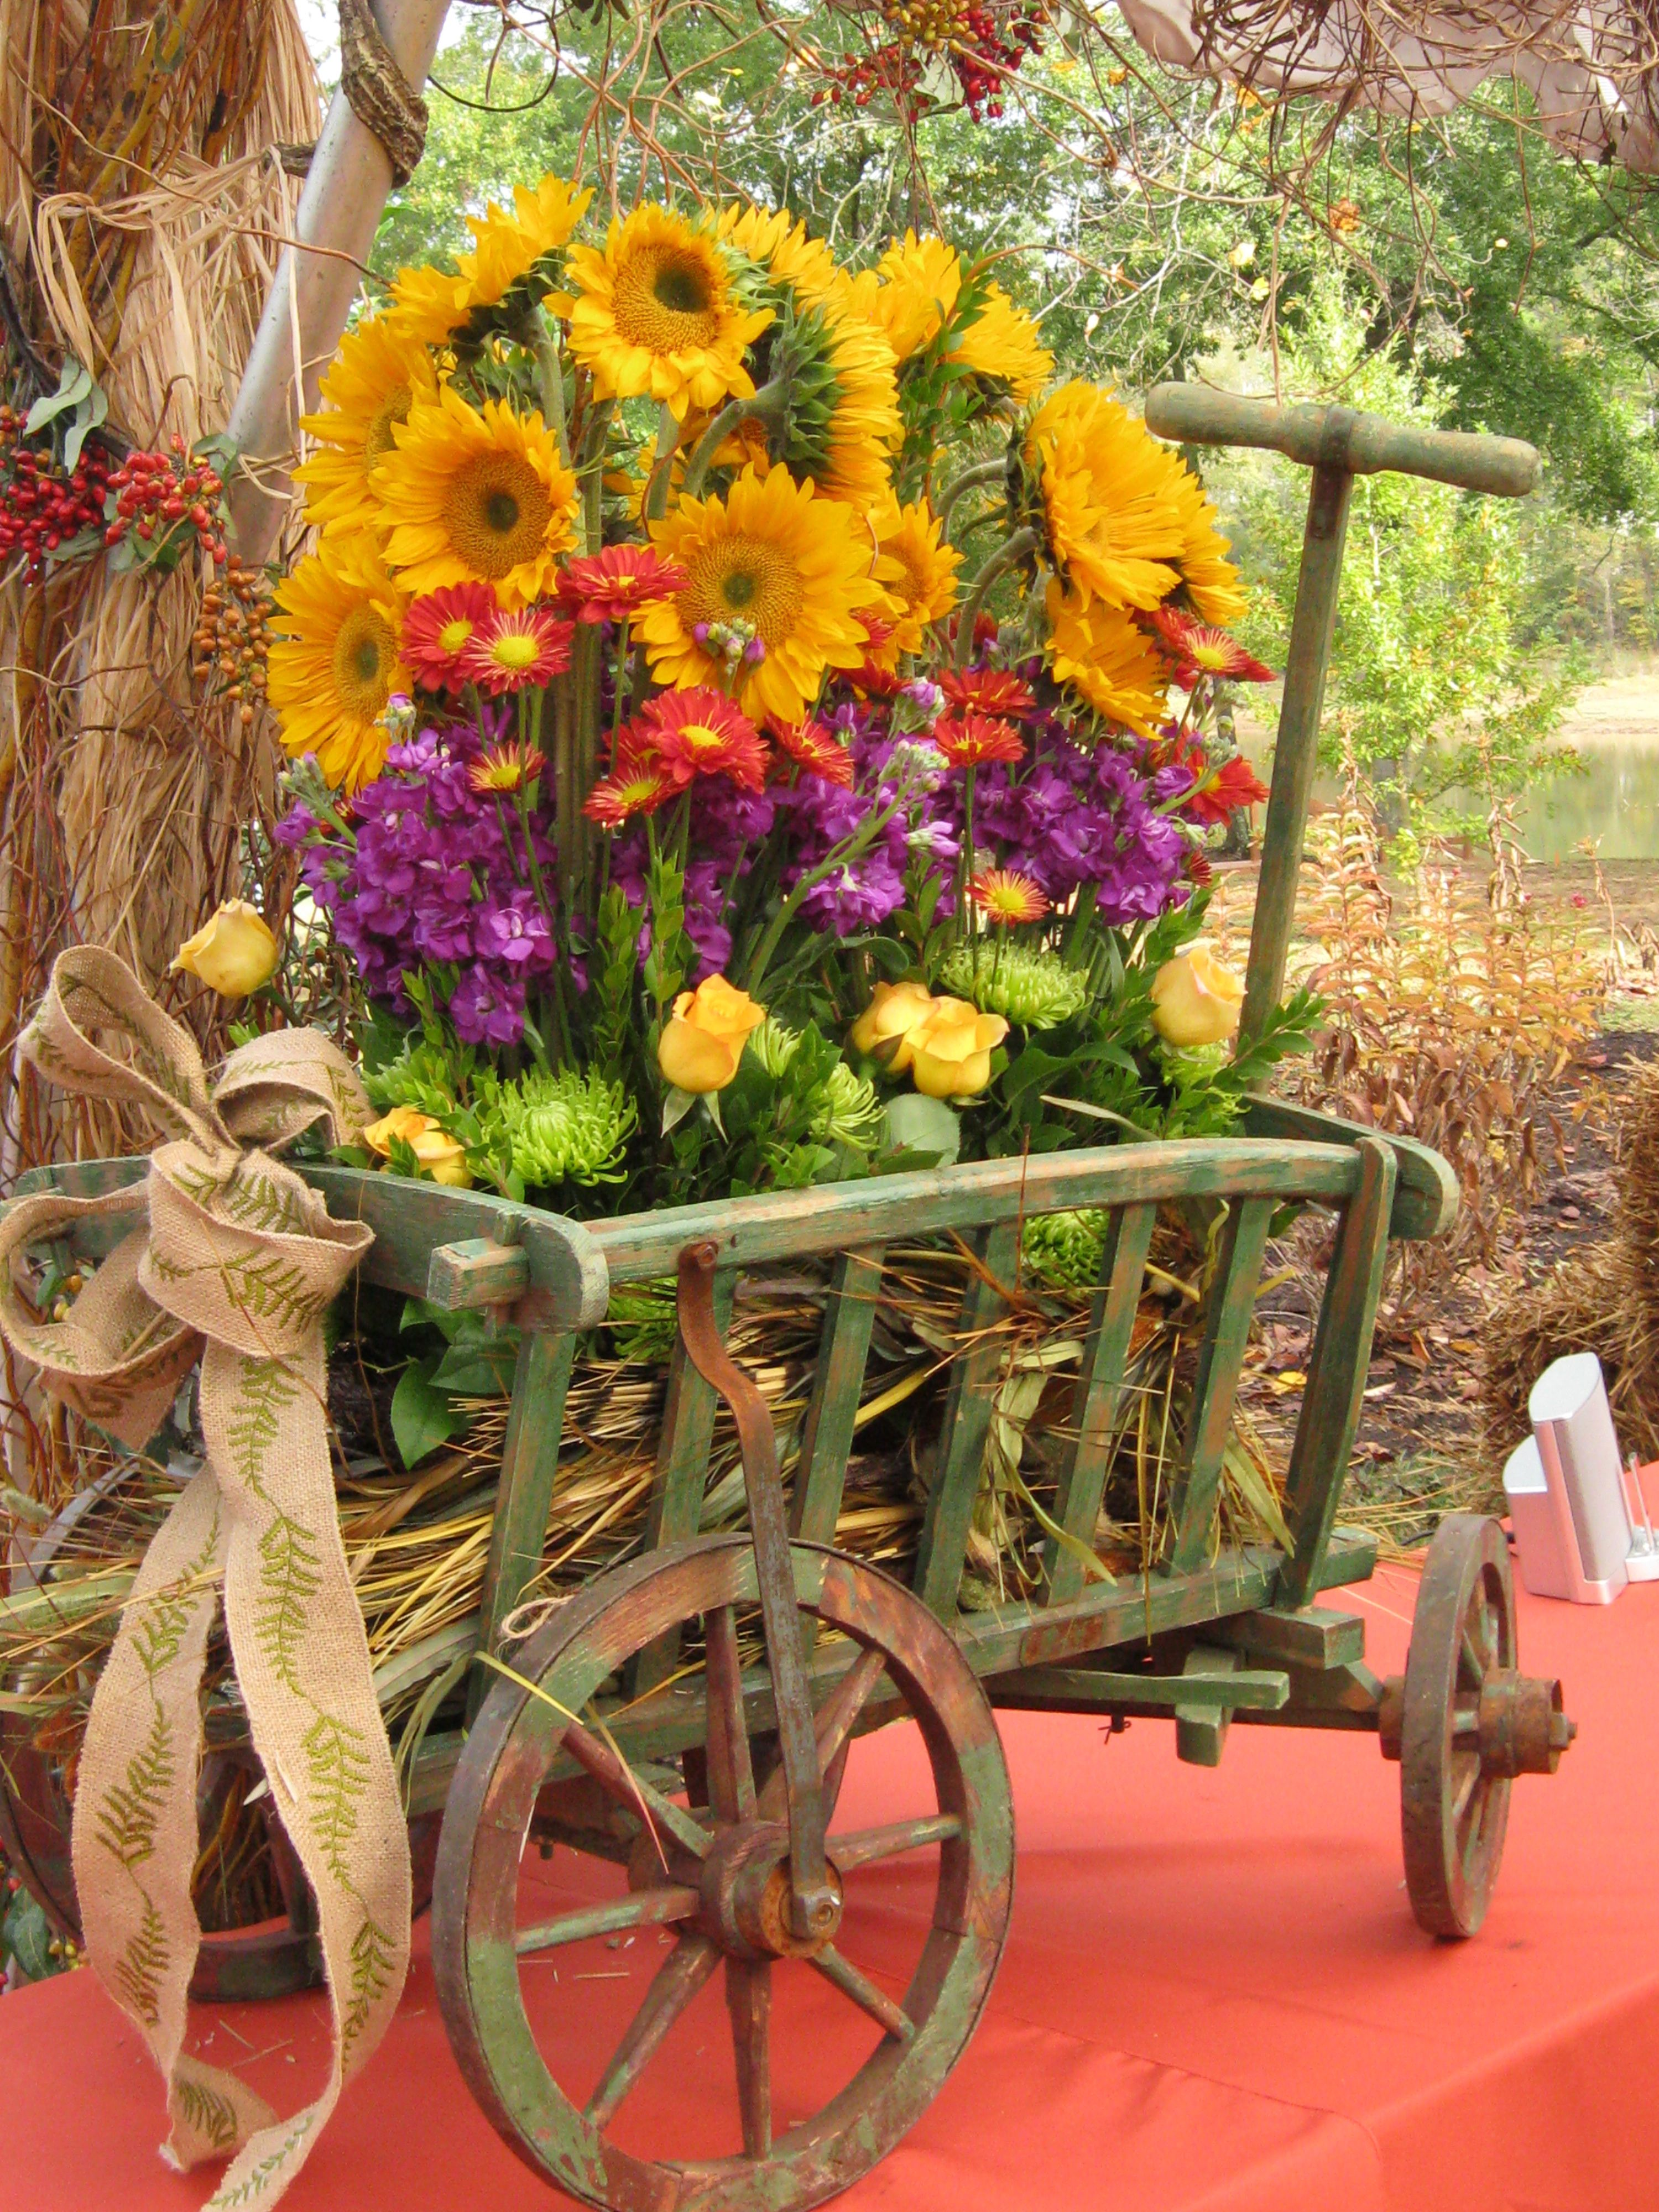 Sunflowers and bright colored blooms fill this wagon